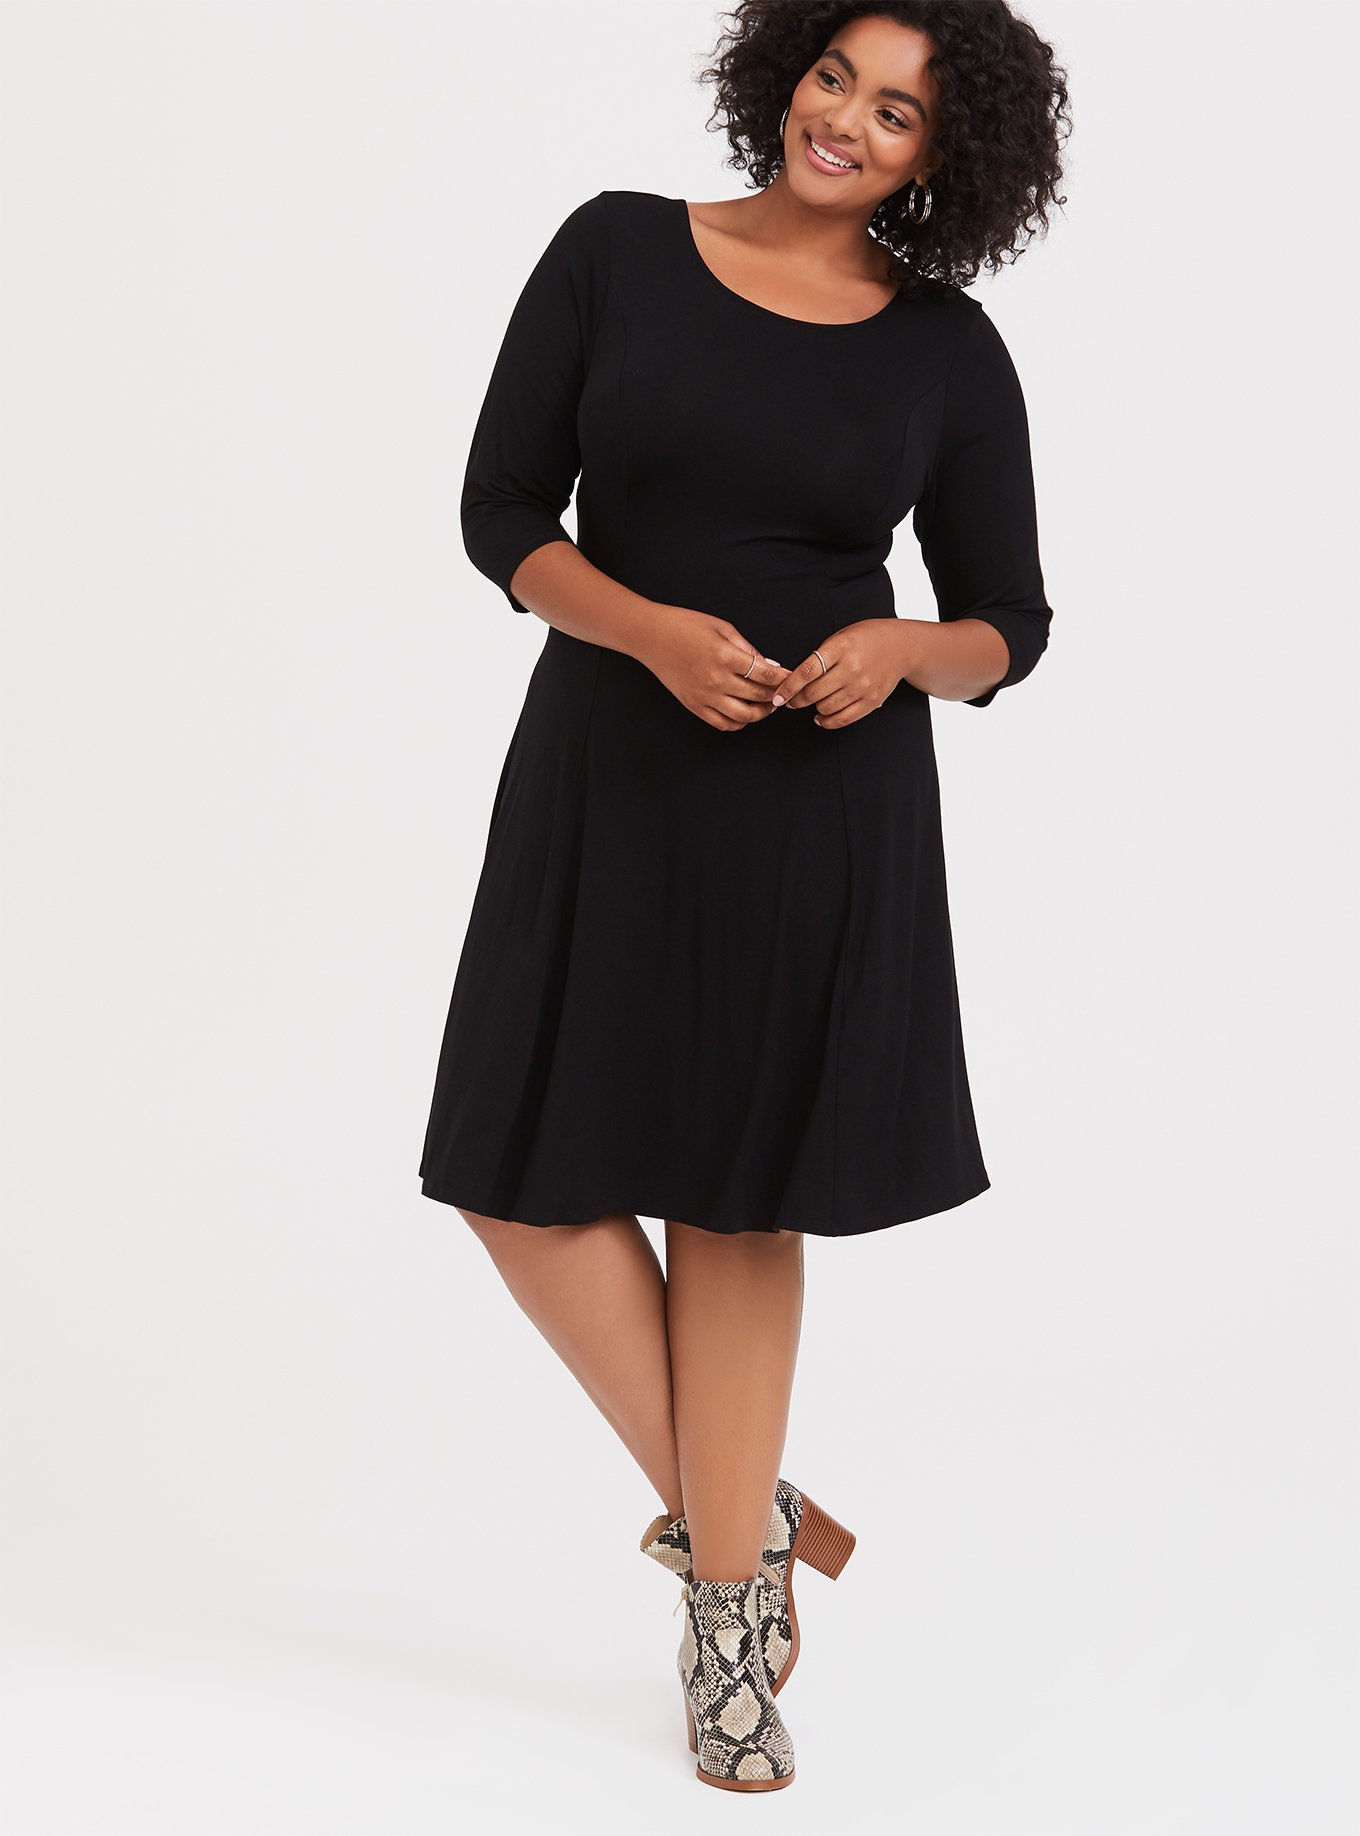 Black Jersey Reversible Corset Fluted Dress by Torrid